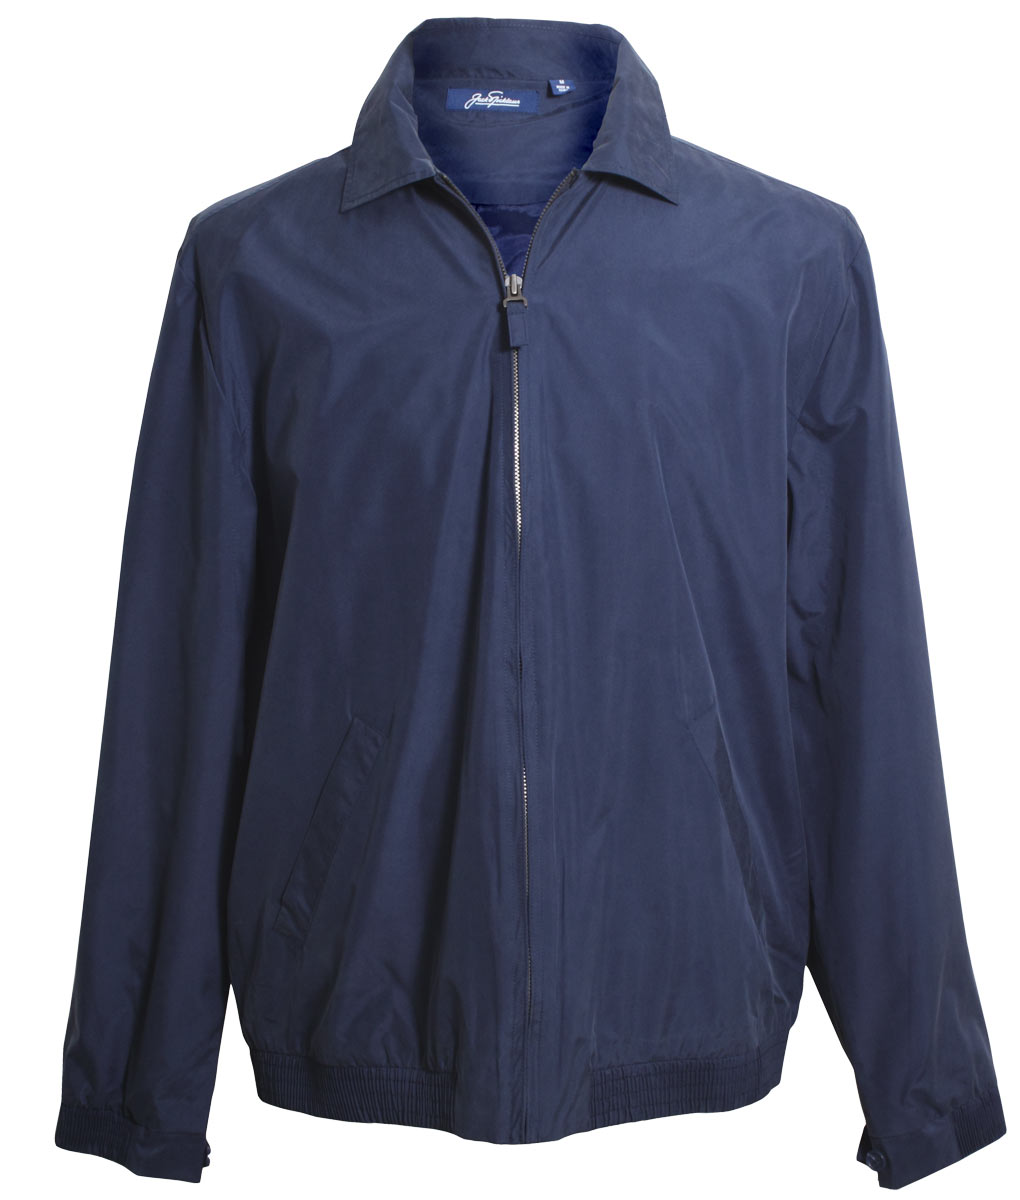 Men's Jacket - Classic Windbreaker